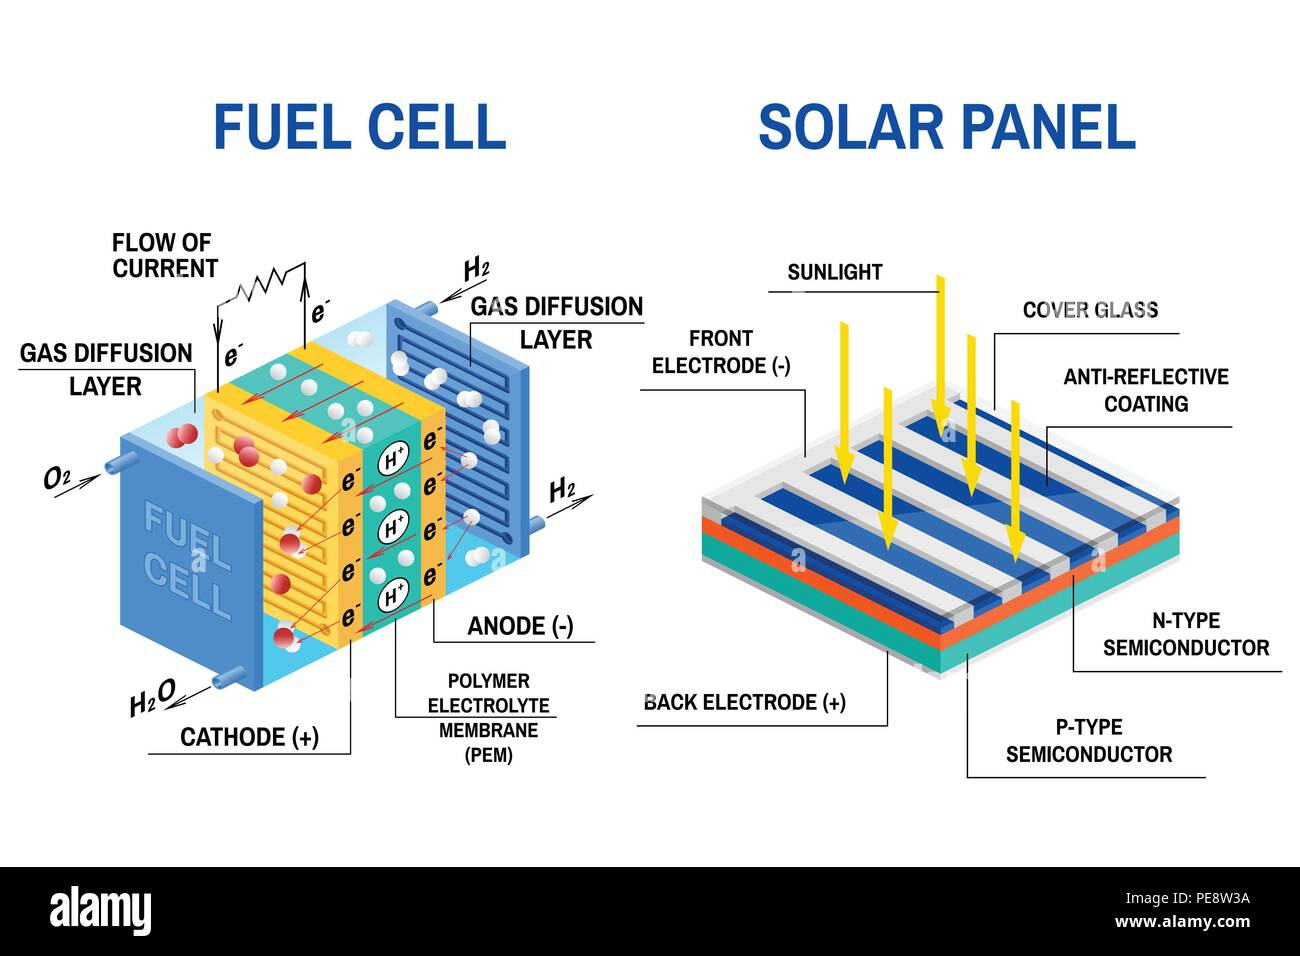 hight resolution of process of converting light to electricity and fuel cell diagram renewable energy concept vector illustration solar panel and device that converts